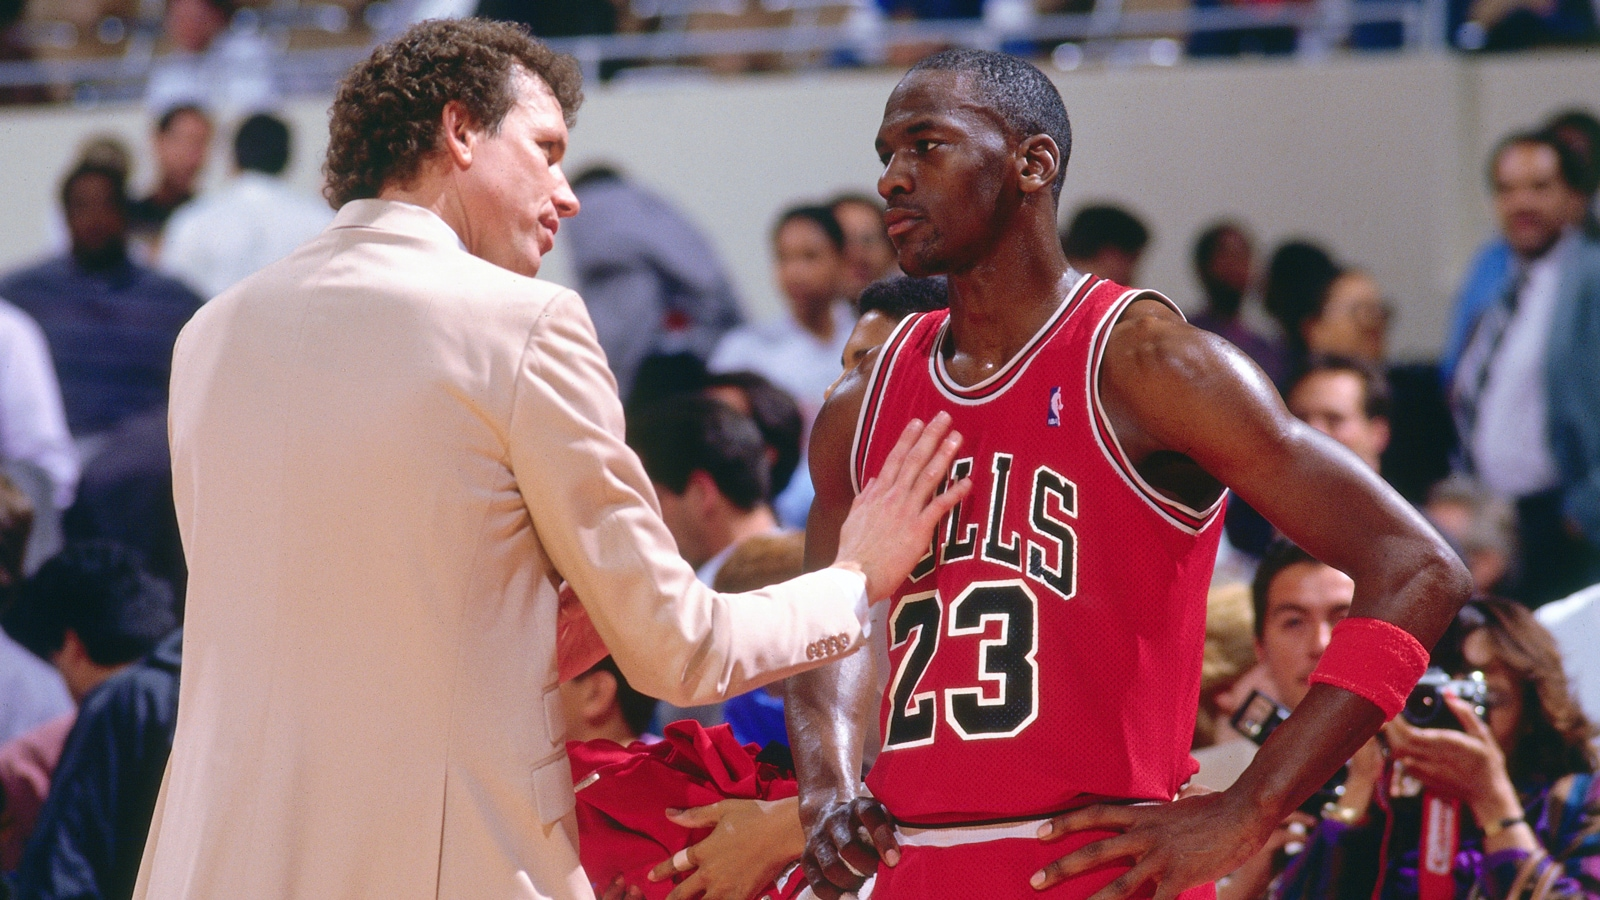 Doug Collins and Michael Jordan